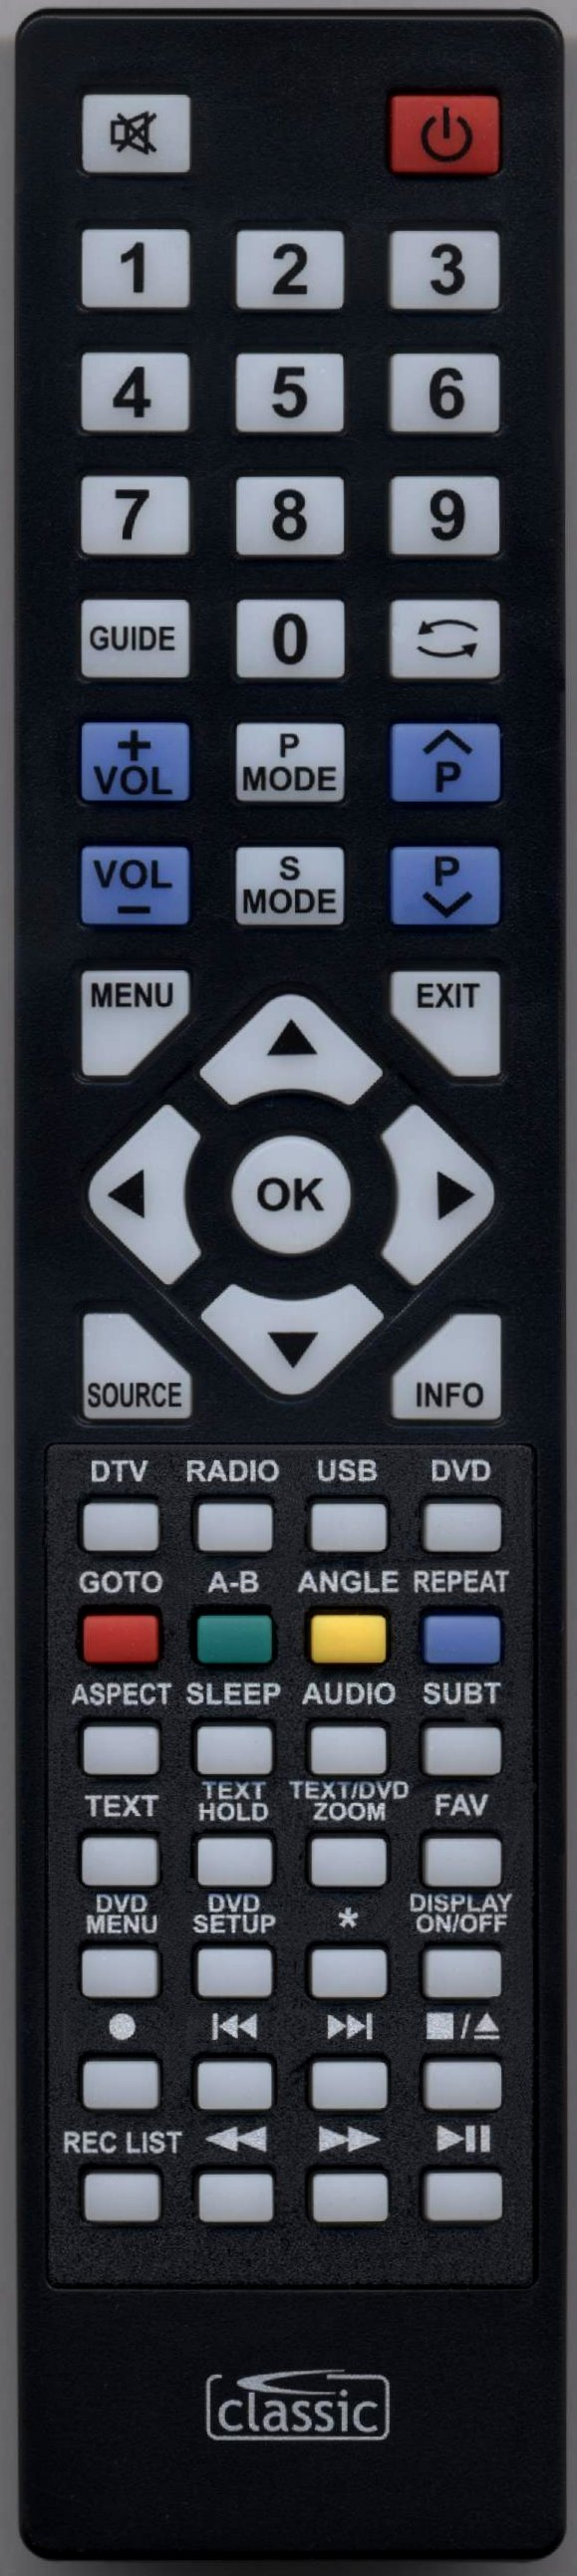 BLAUPUNKT 32/233I-WB-5B2-HKDUP-UK Remote Control Alternative